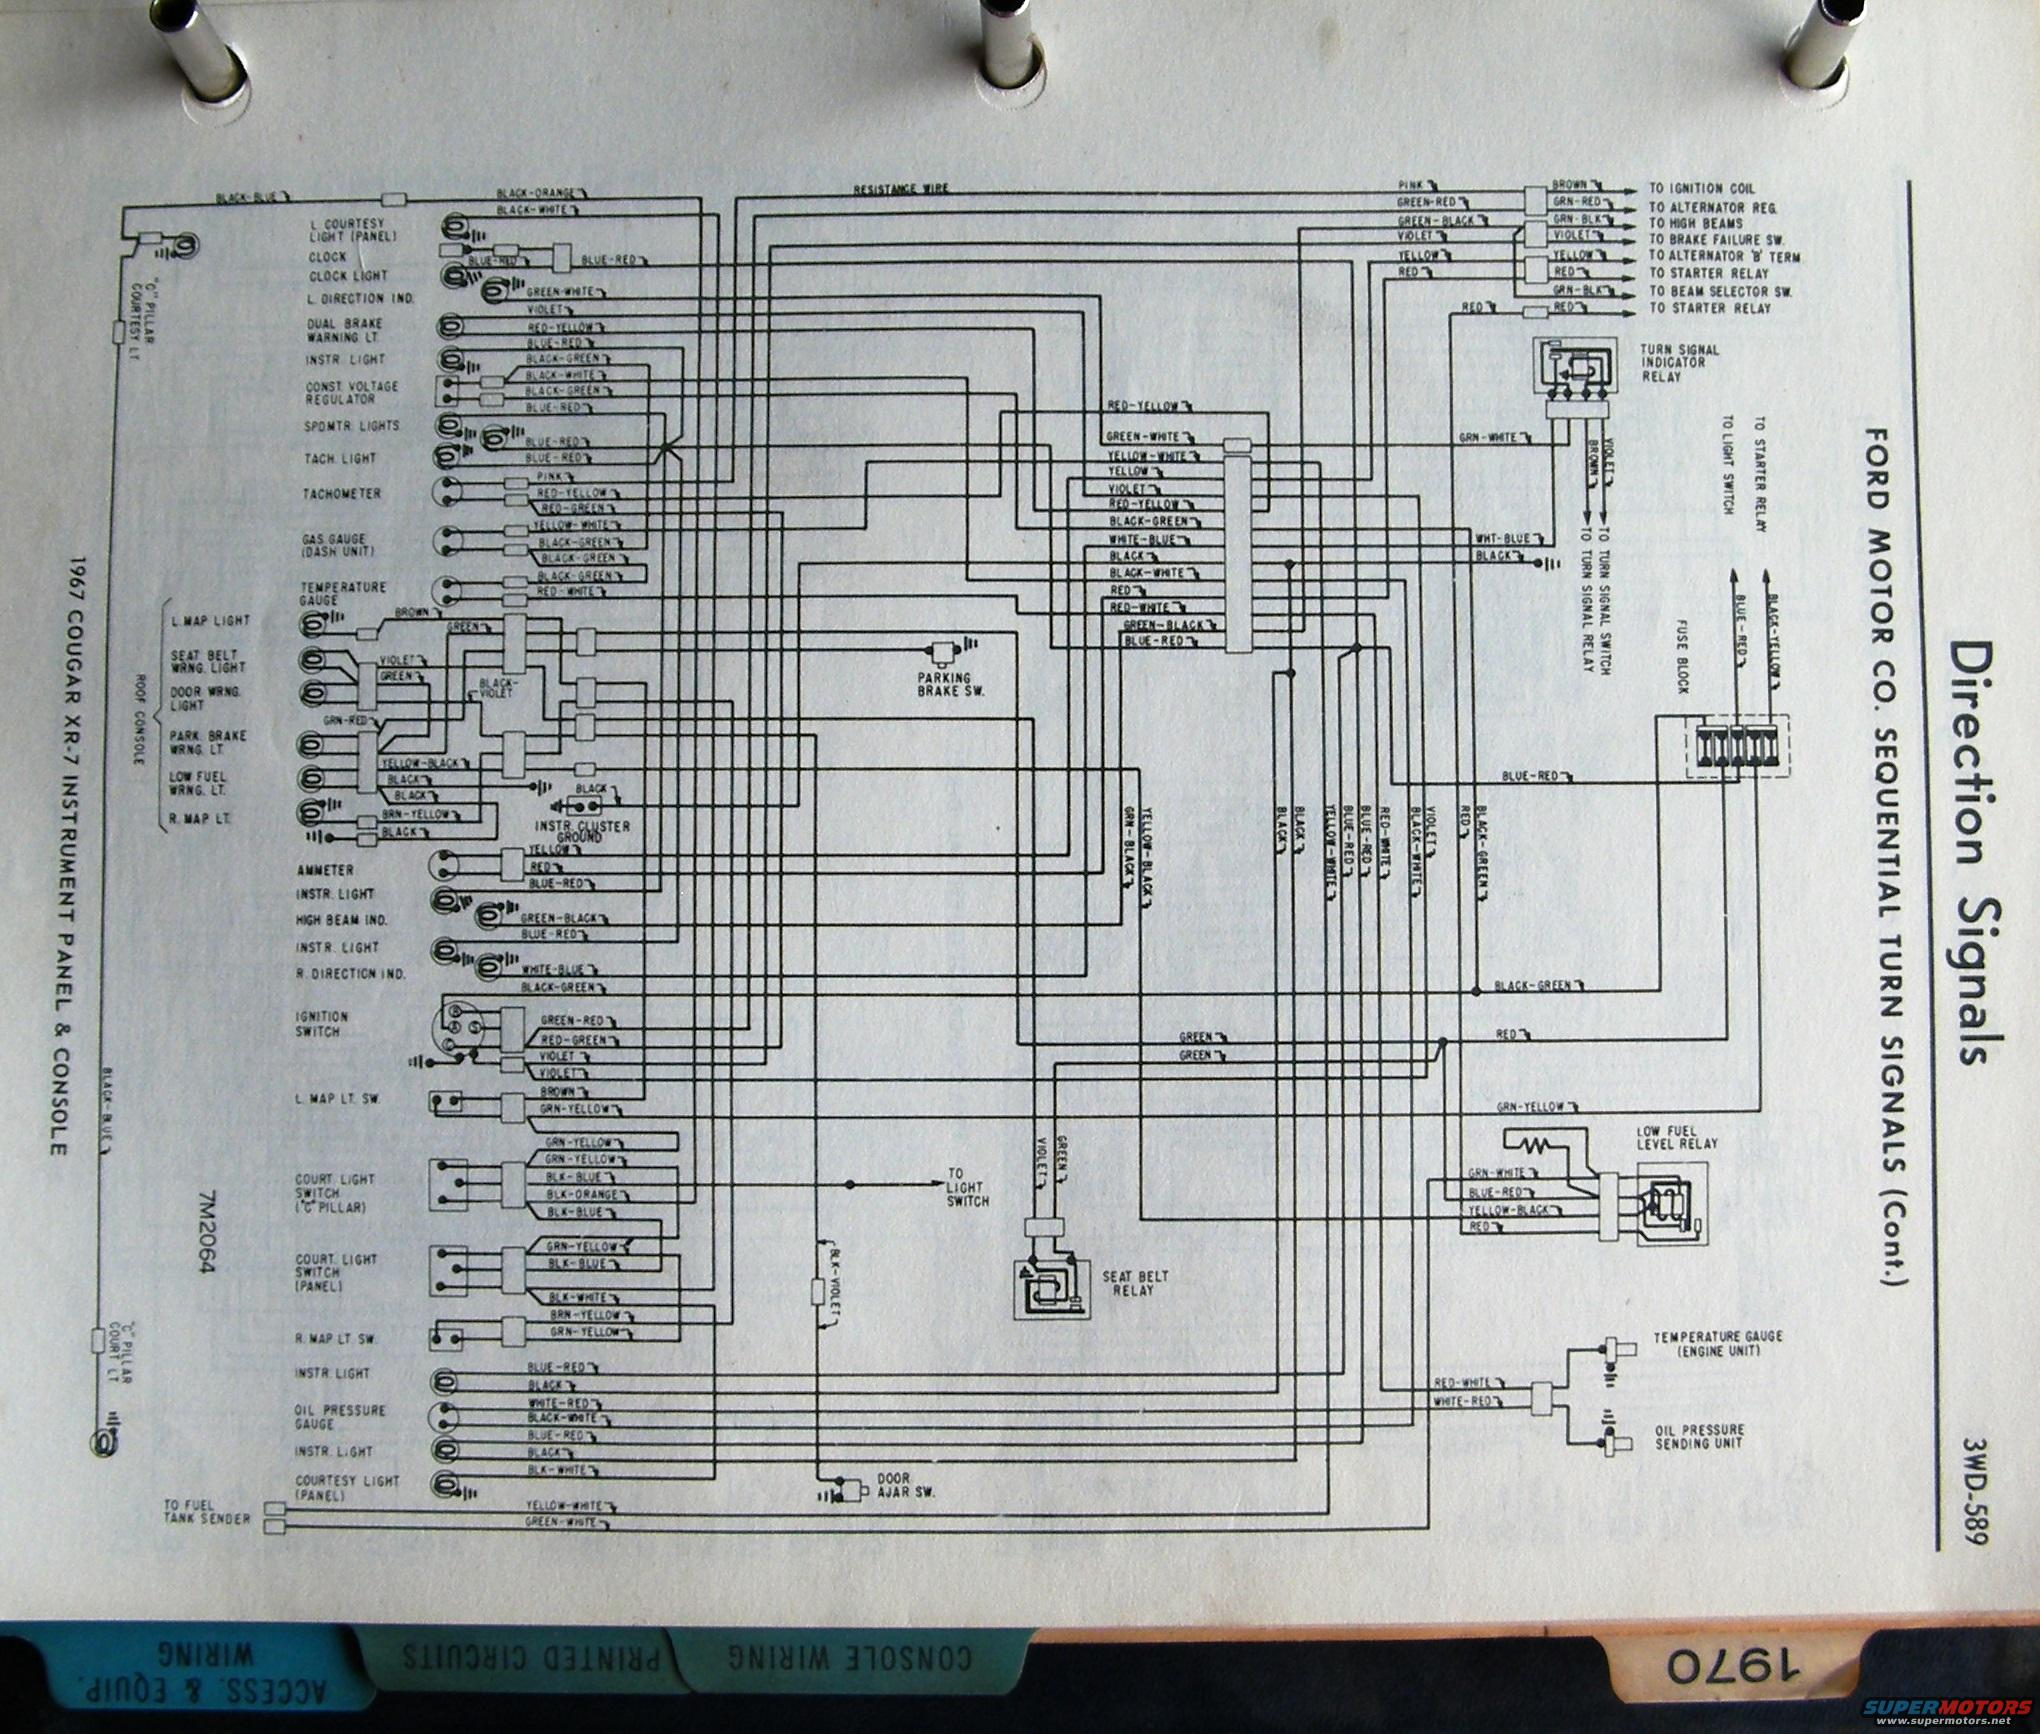 1967 cougar wiring diagram 8 www sg dbd de \u2022Ford Cougar Alternator Wiring Diagram #13